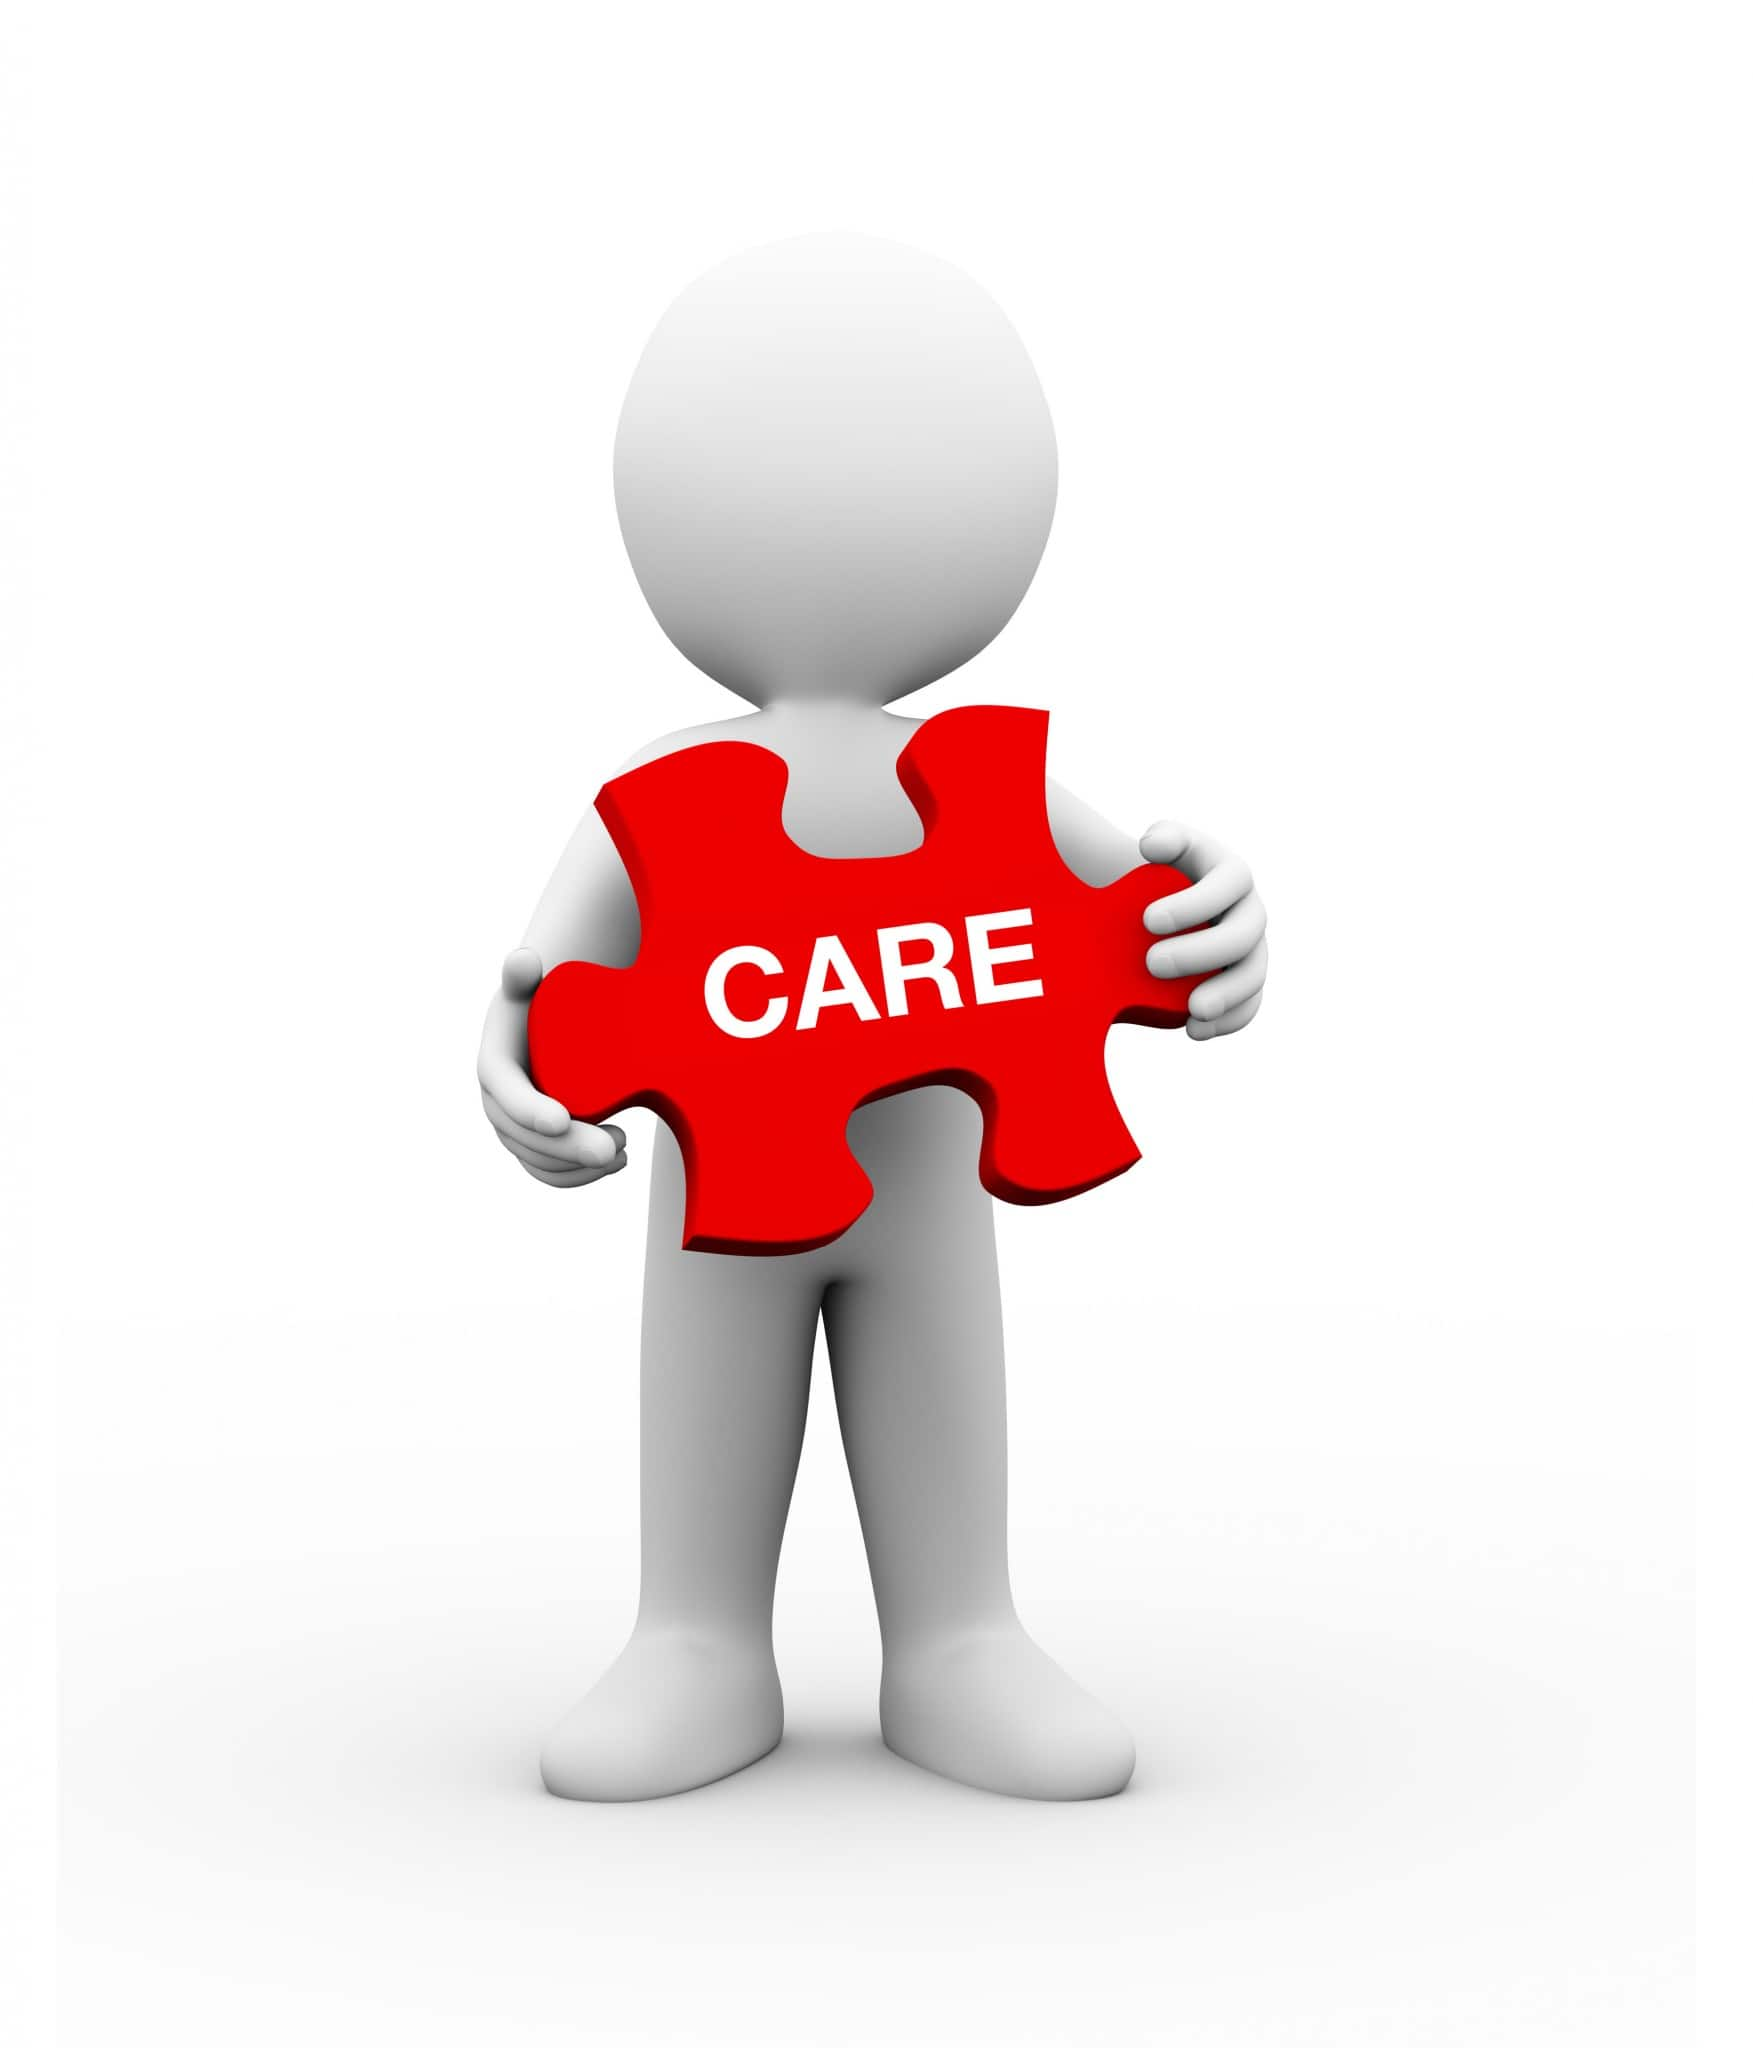 Understand the role of Care Worker